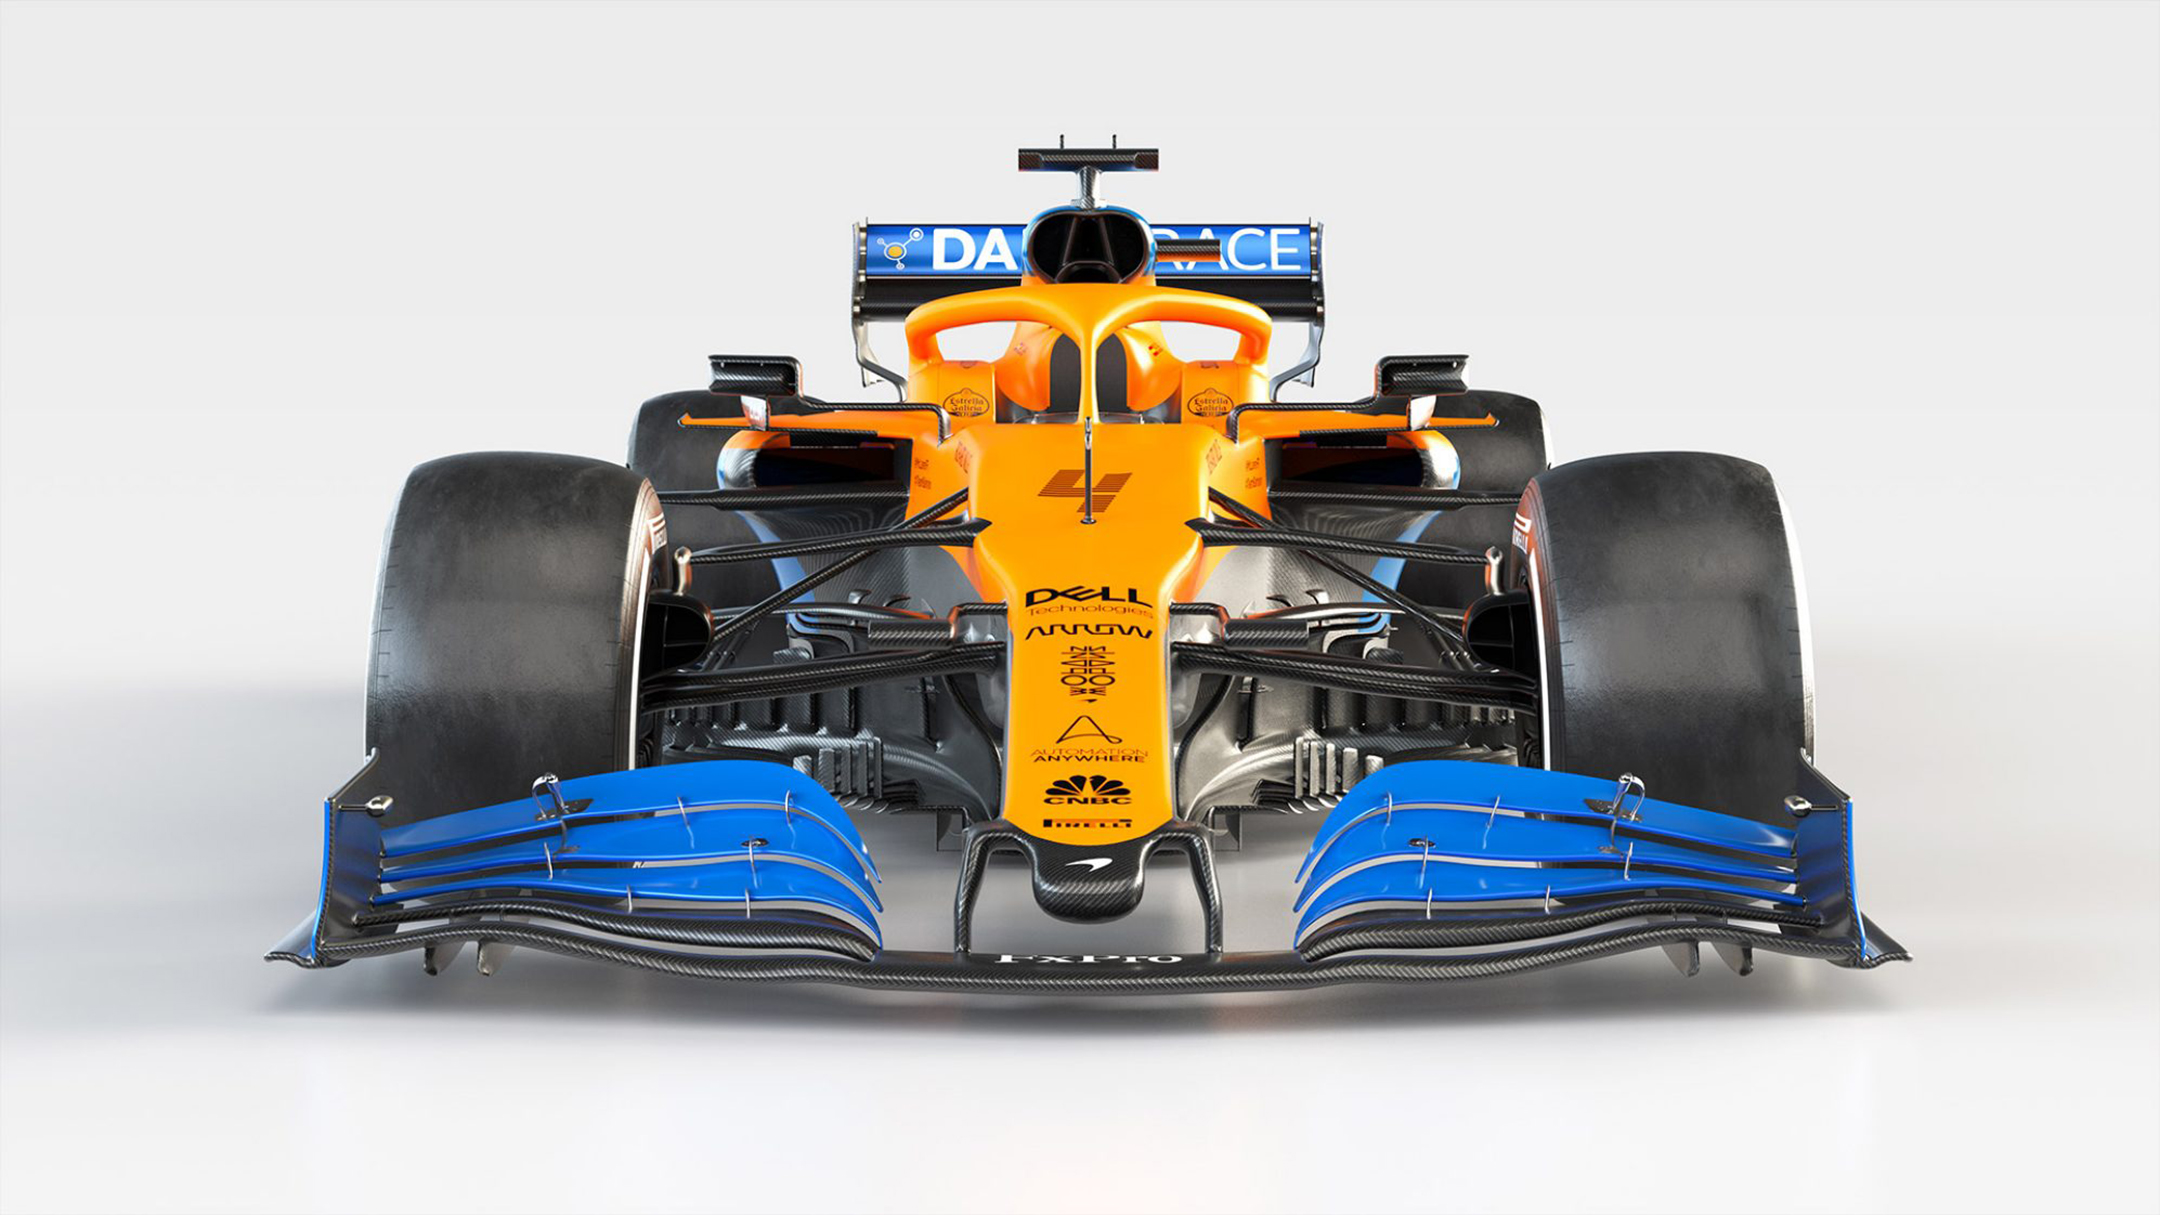 F1 - McLaren Racing - MCL35 - 2020 - front-face - Renault E-Tech 20 - 35A engine - McLaren Applied Technologies